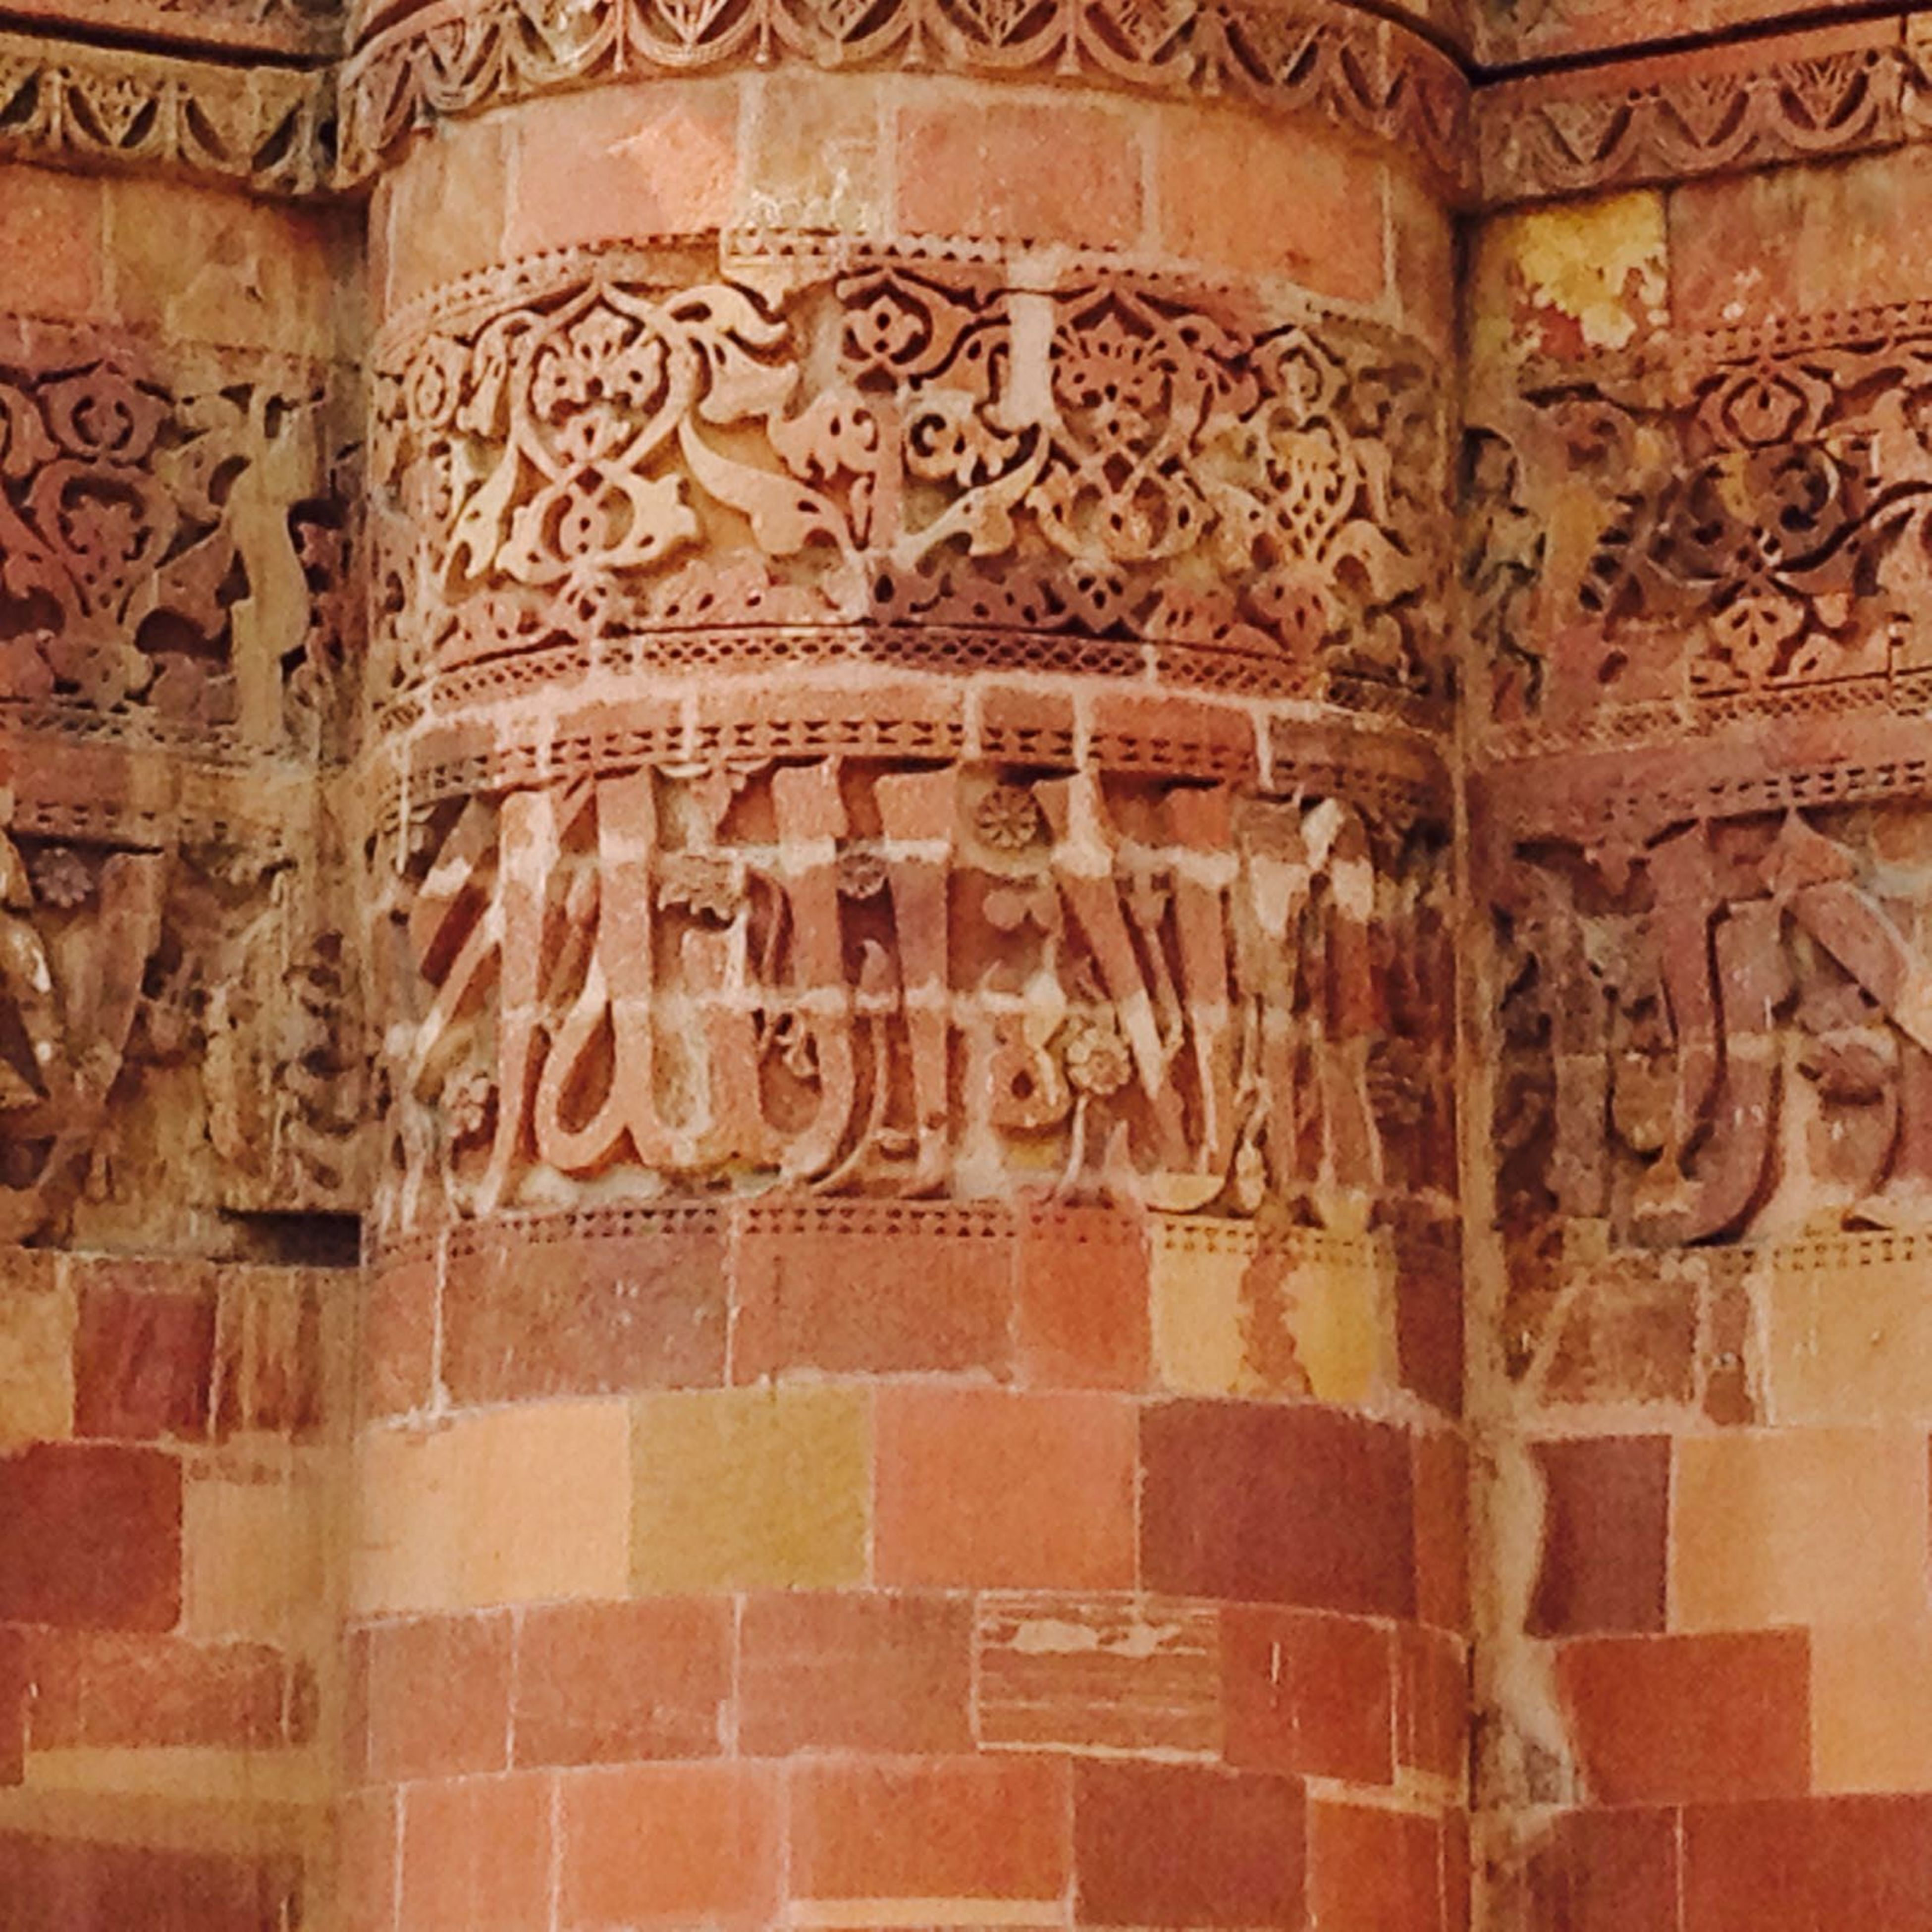 indoors, art and craft, architecture, pattern, design, built structure, wall - building feature, art, creativity, full frame, backgrounds, carving - craft product, ornate, close-up, wall, text, no people, old, history, textured